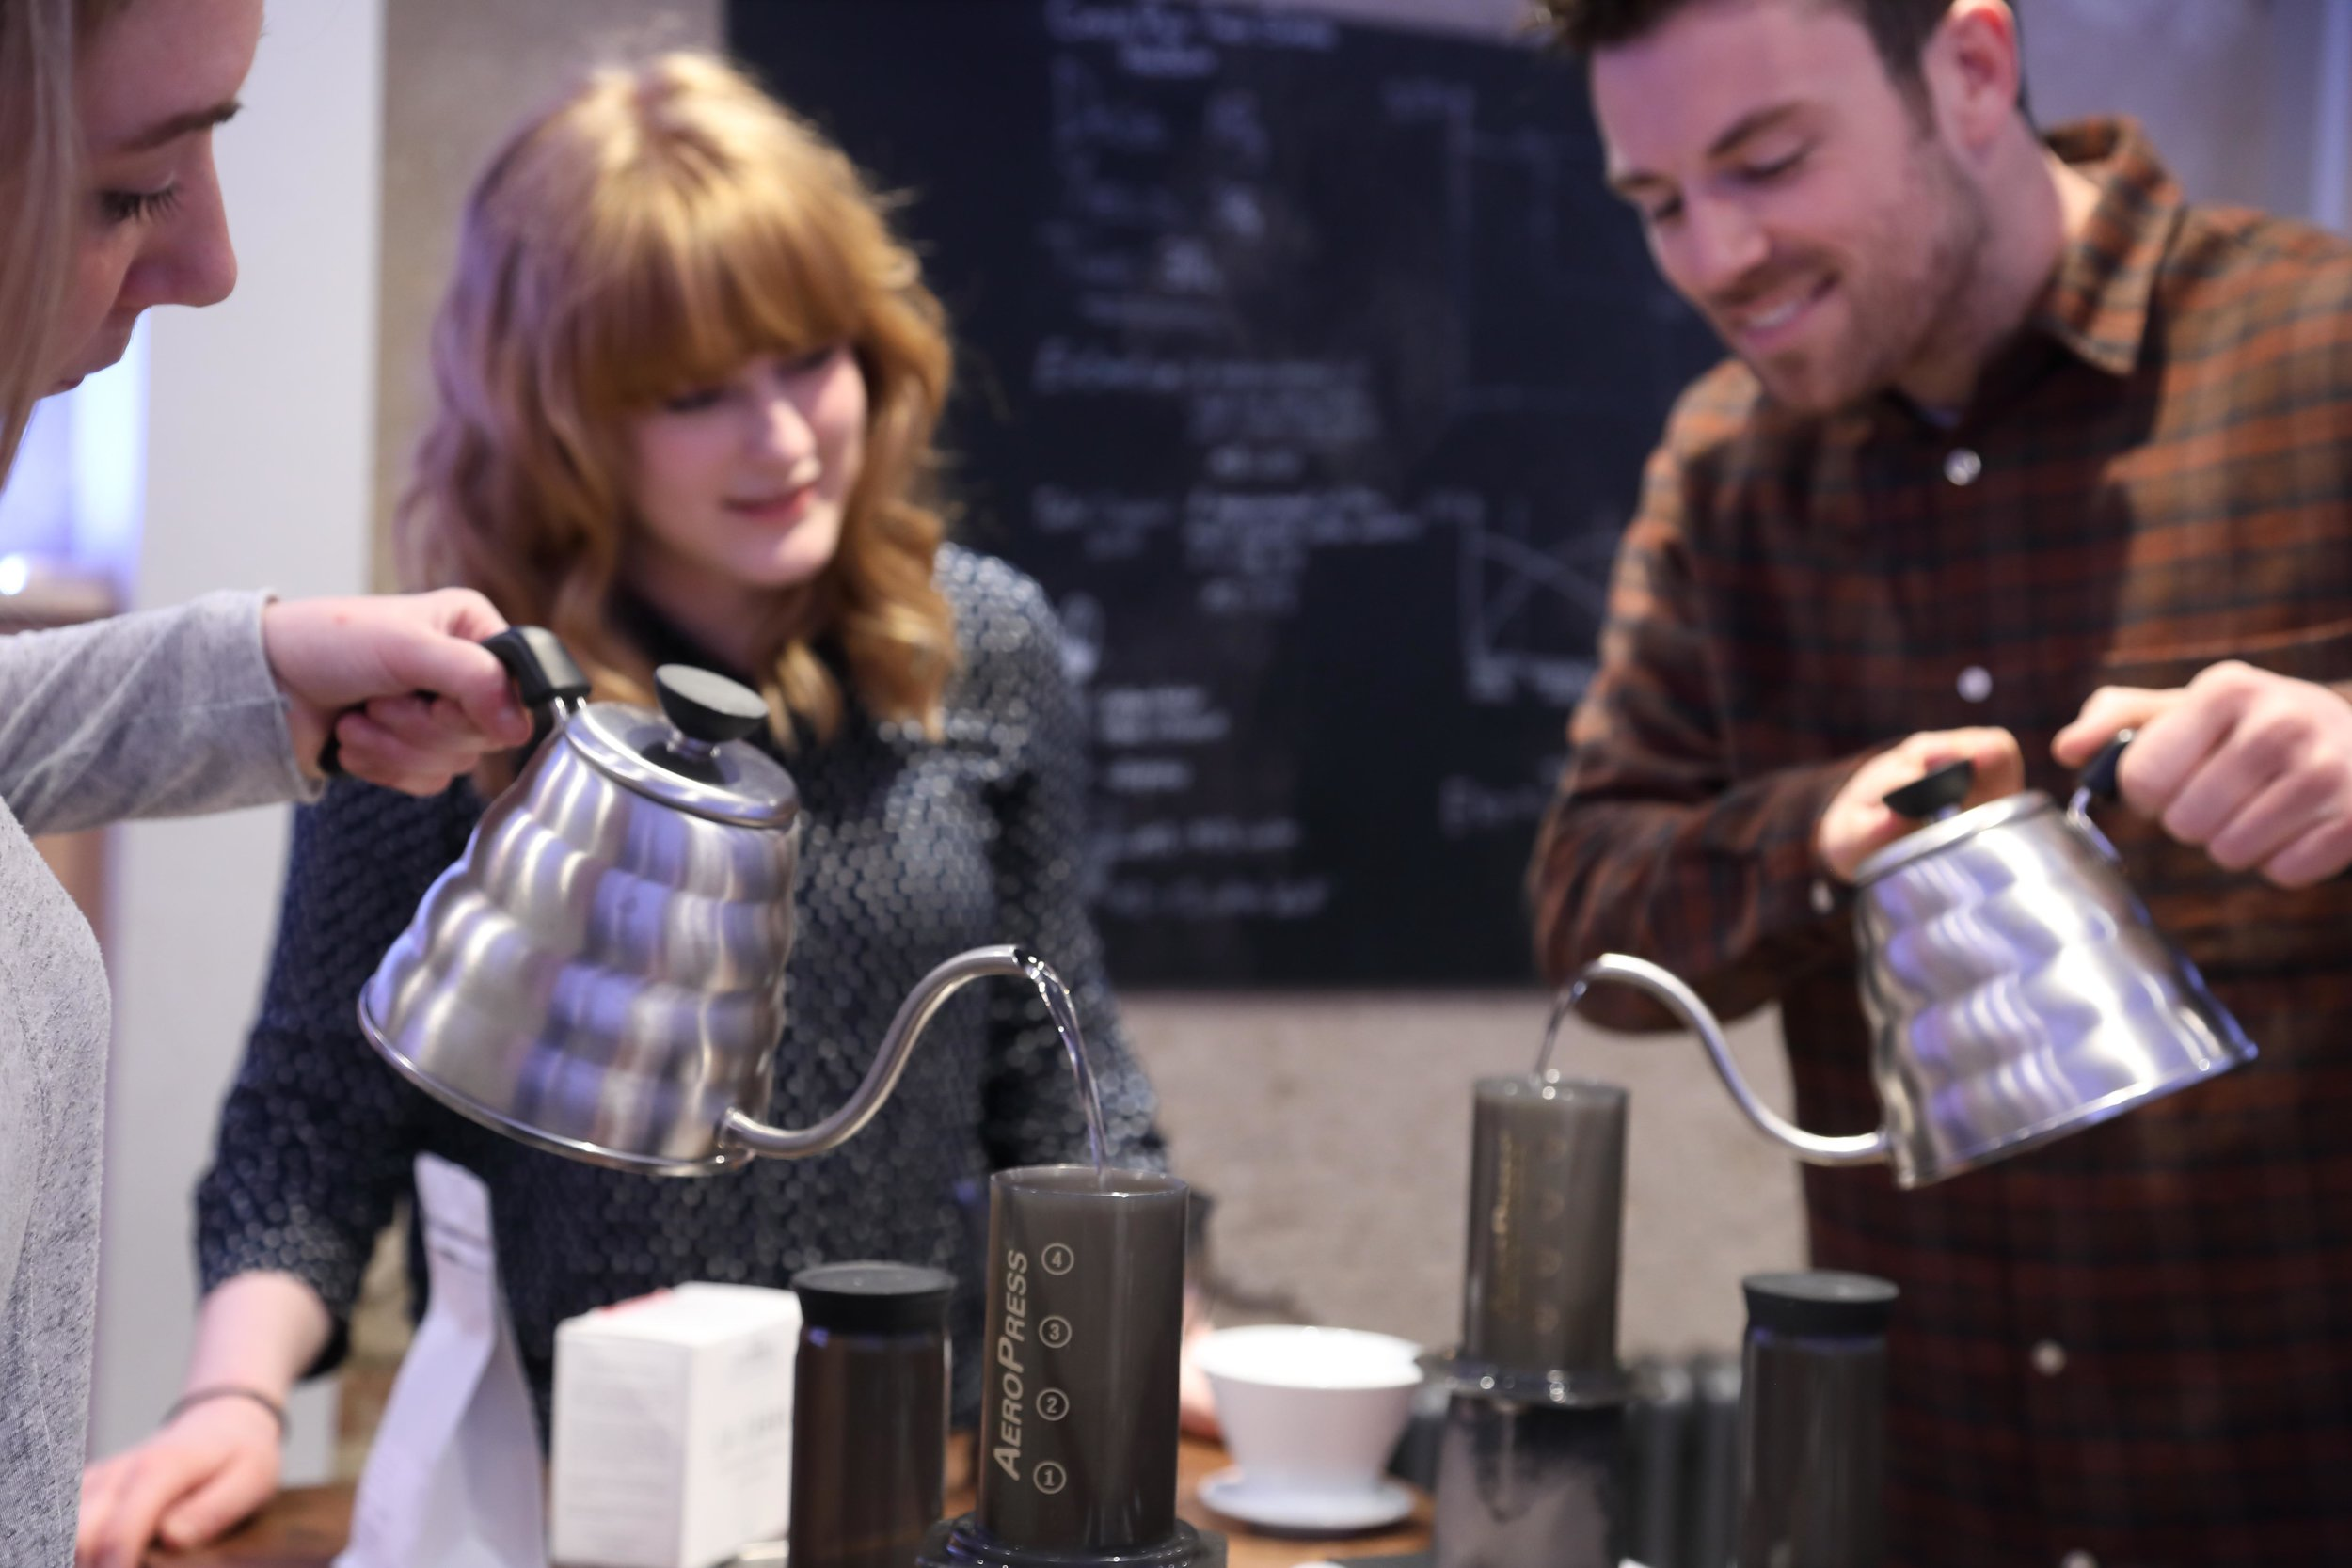 Aeropress Masterclass   Get to grips with the Aeropress and demystify one of the most versatile brew methods available.